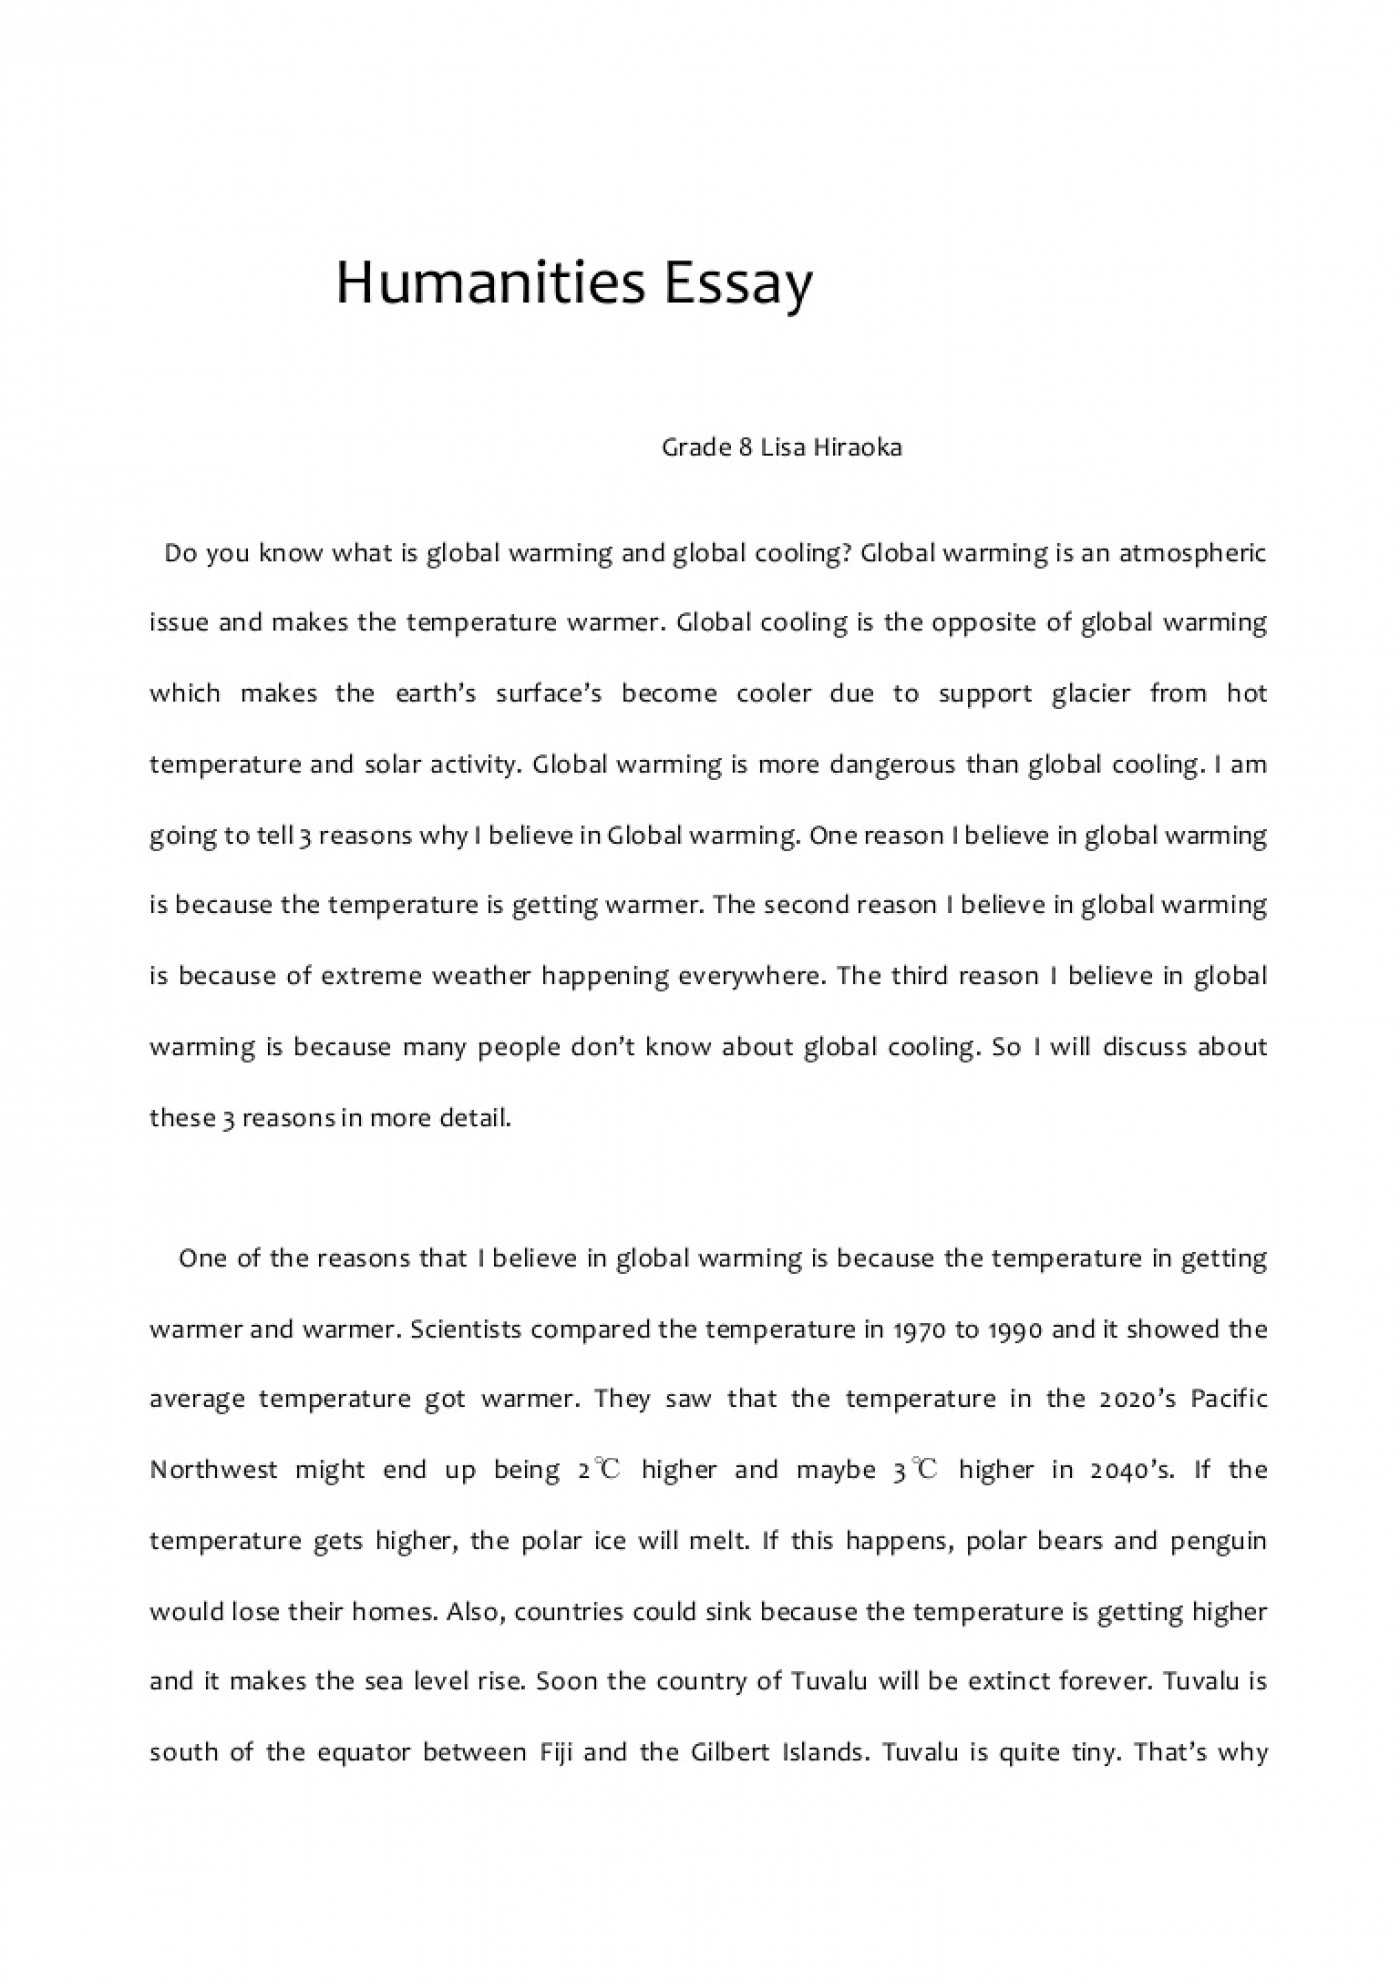 006 Global Warming Essay Humanitiesessay Phpapp02 Thumbnail Unusual Persuasive Thesis Free Research Paper Topics 1400